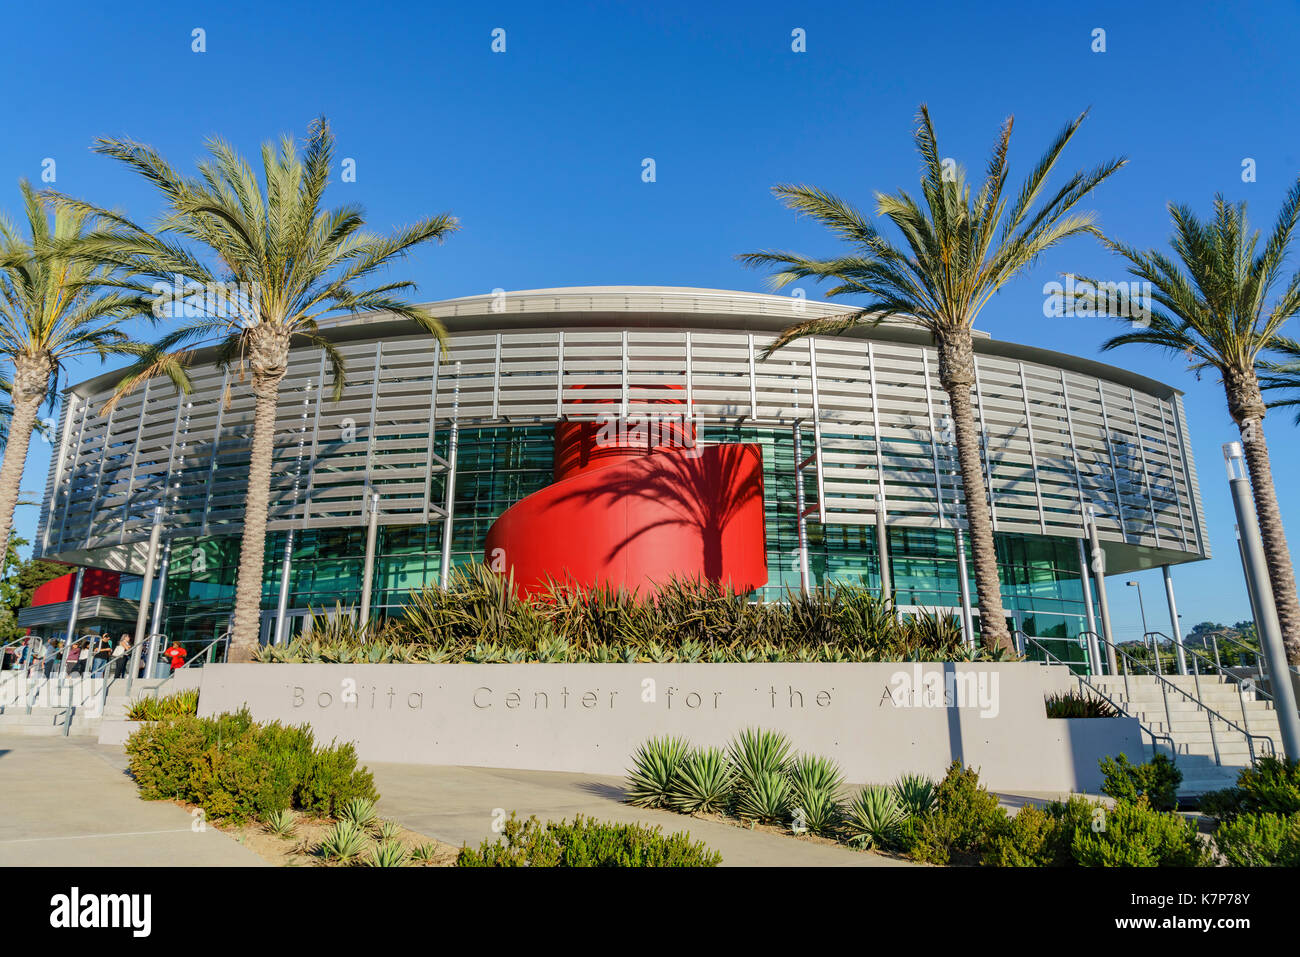 Los Angeles , jun 25: Vista exterior de la bonita centro para las artes en jun 25, 2017 en los angeles, California Imagen De Stock